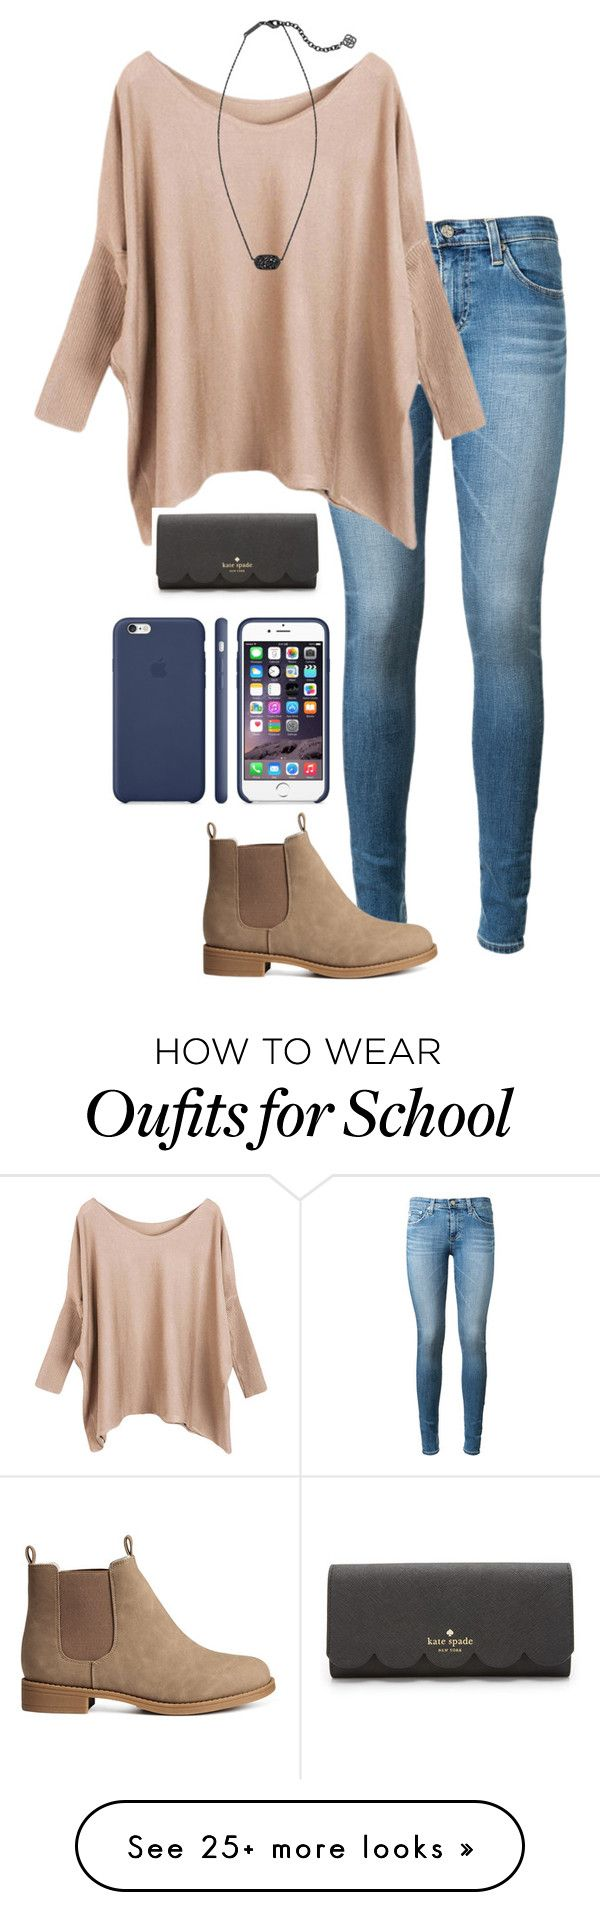 """I might have to start riding the bus to school "" by madelyn-abigail on Polyvore featuring AG Adriano Goldschmied, H&M, Kendra Scott, Kate Spade, women's clothing, women, female, woman, misses and juniors"